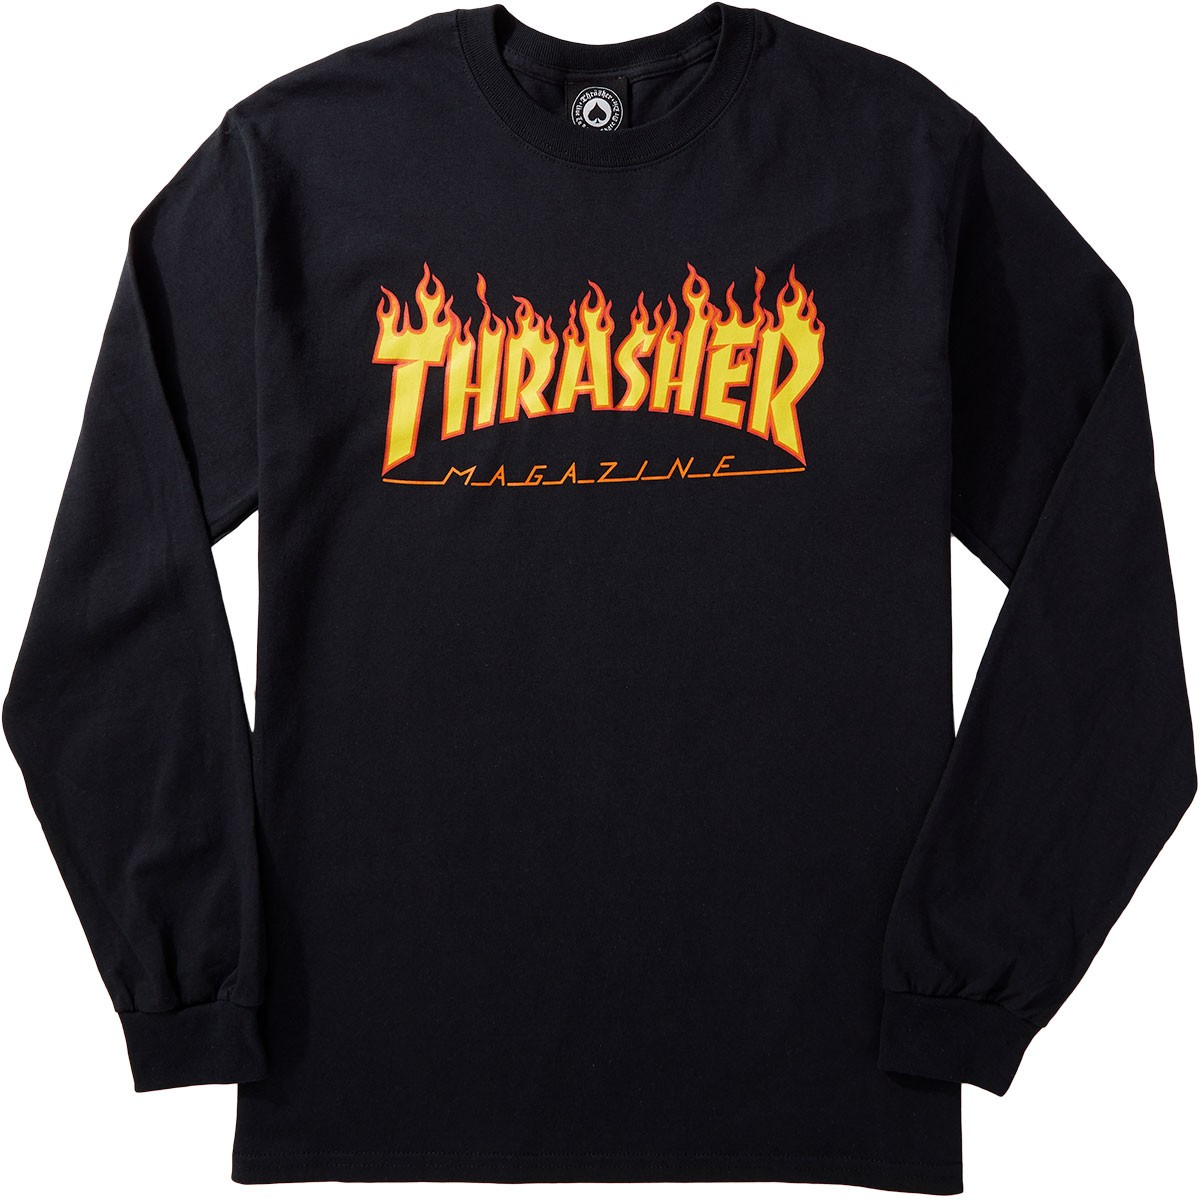 6915040e Thrasher T-Shirts – Short-Sleeve & Long-Sleeve T-Shirts